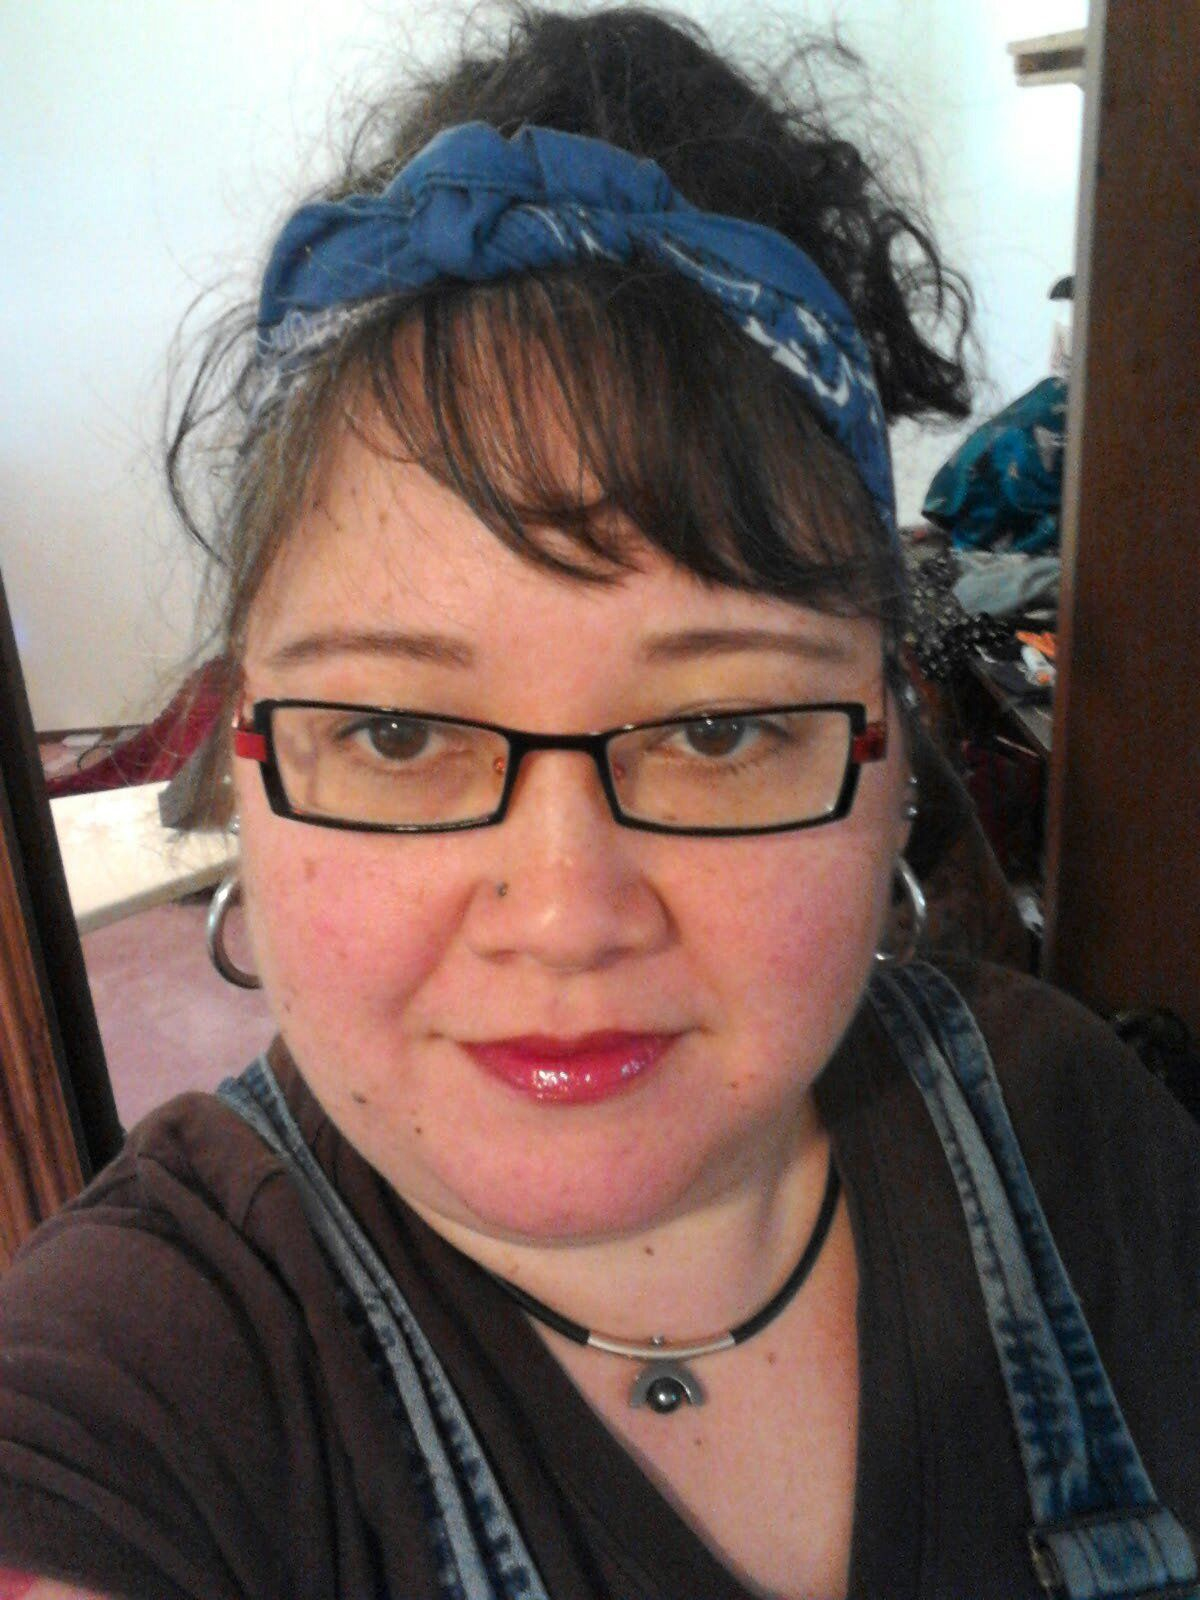 Camping Cute Bandana Messy Updo Filled In Eyebrows Penciled